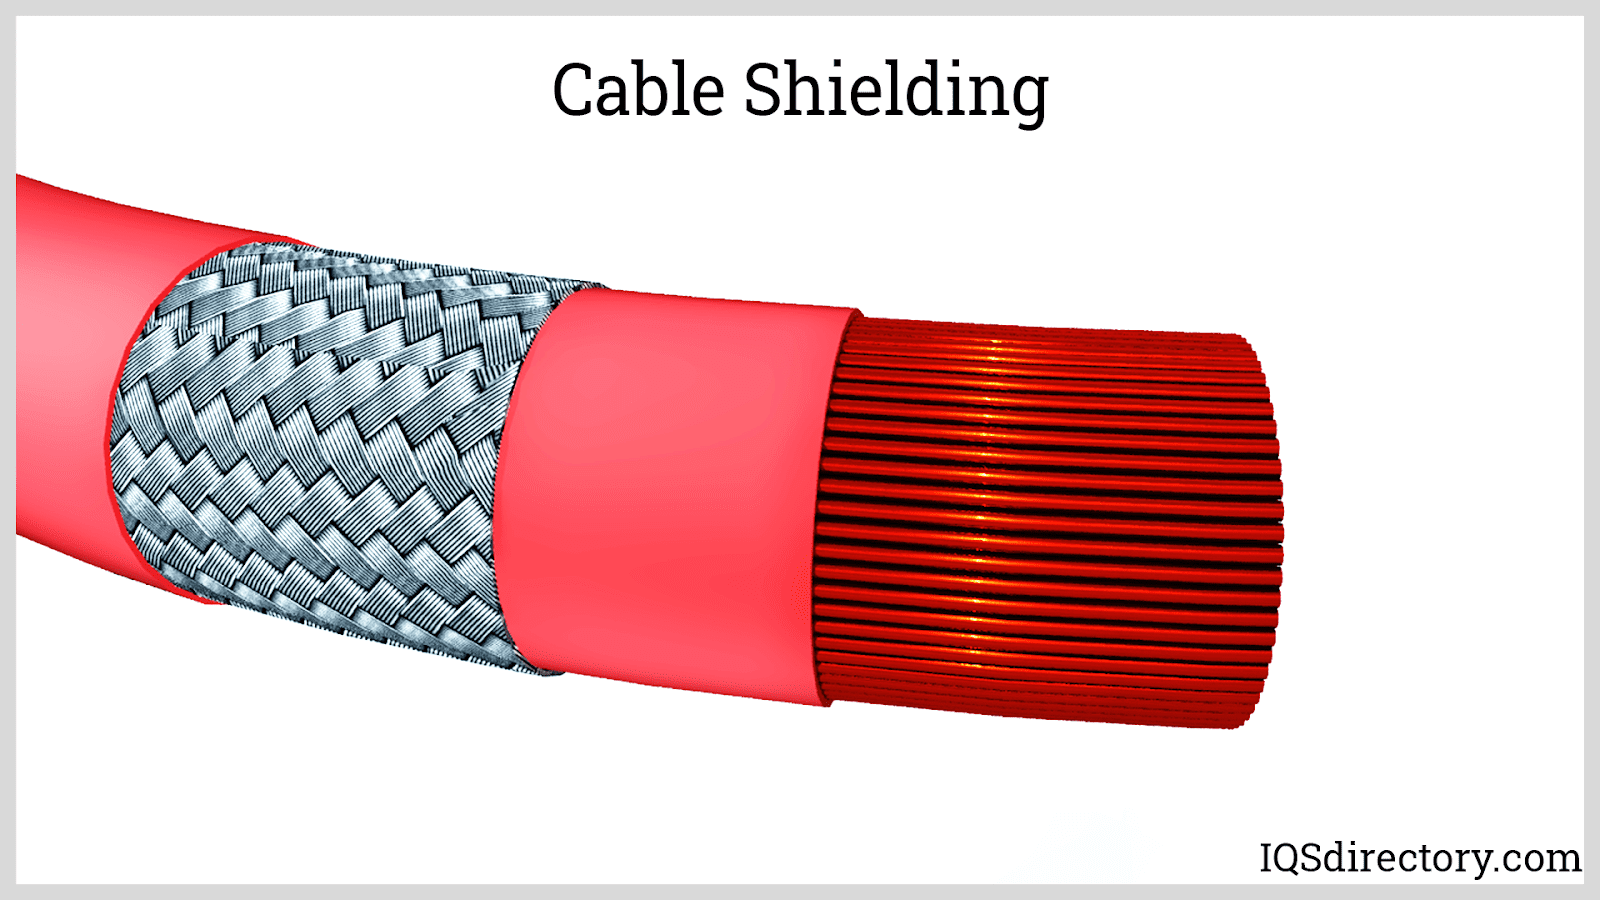 Cable-Shielding